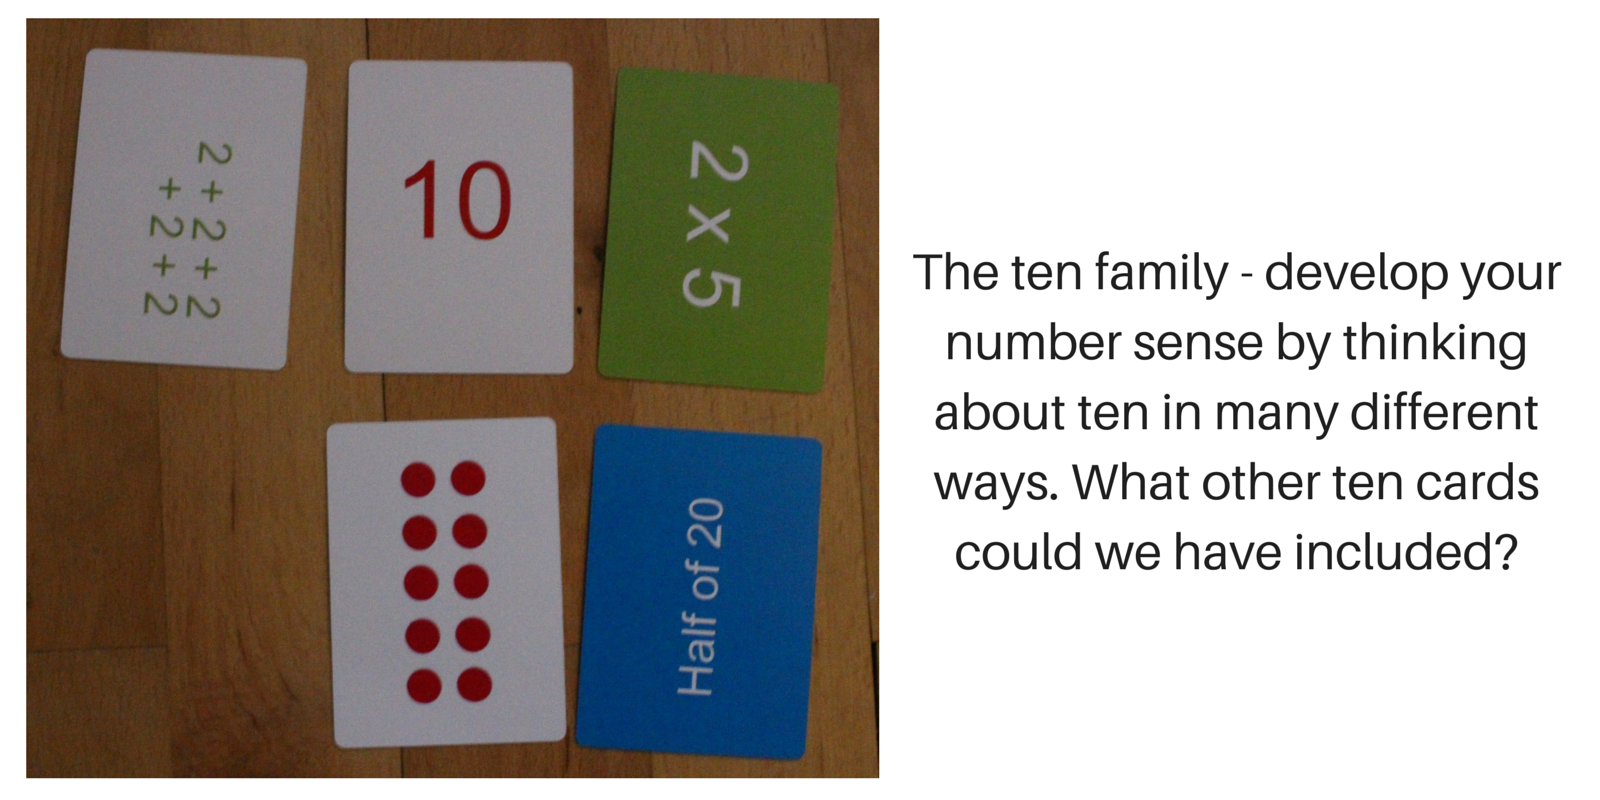 The ten family - develop your numbr sense(2)